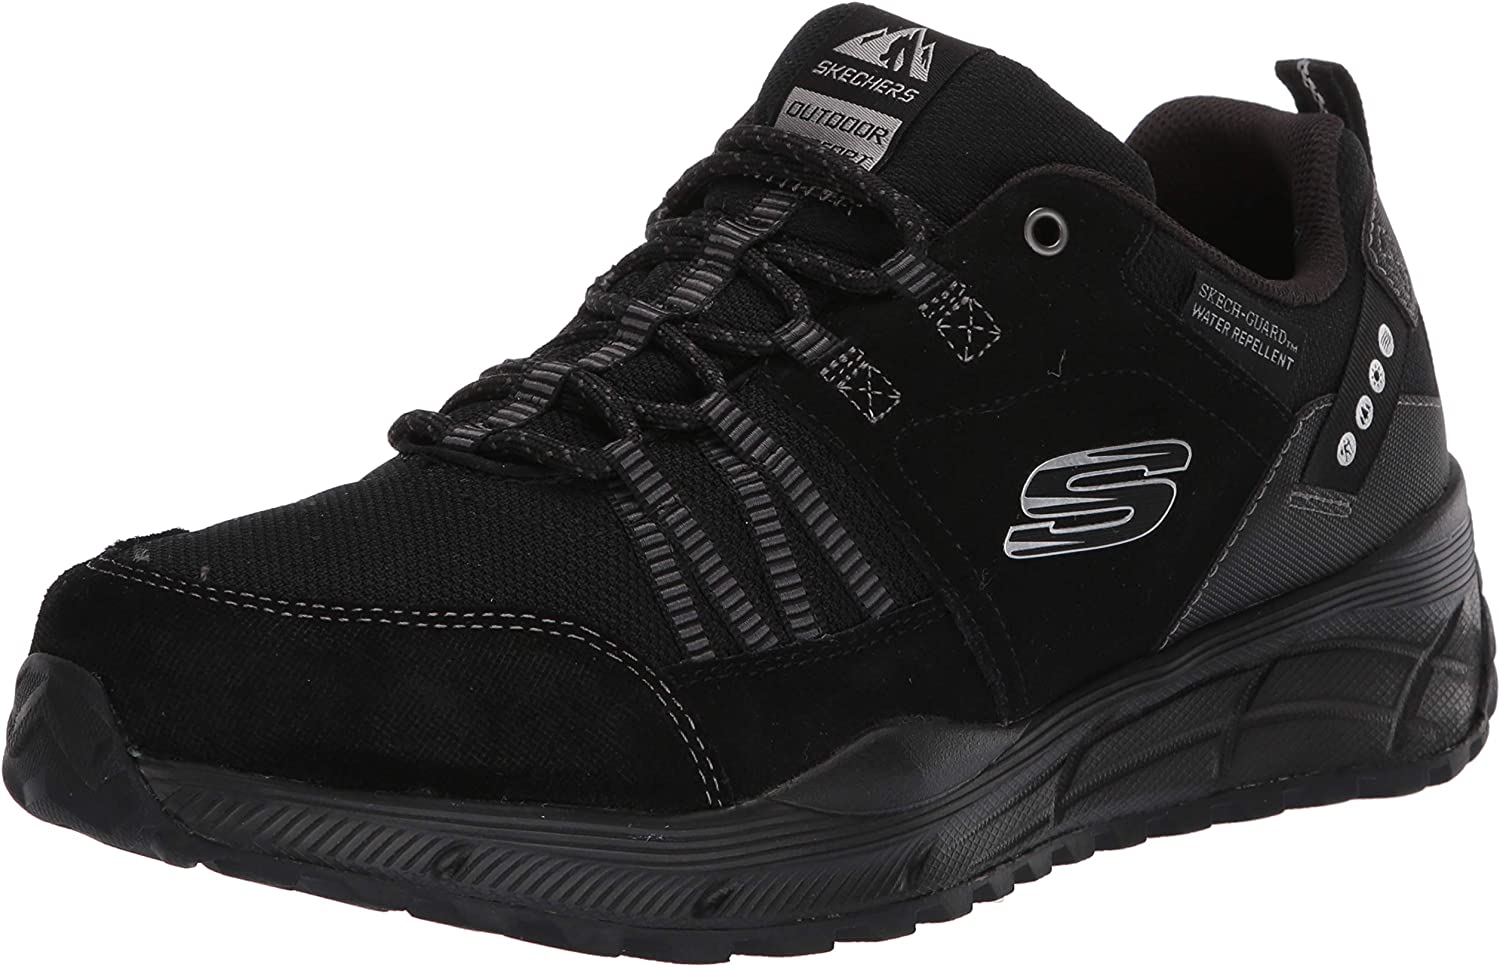 Skechers Men's Equalizer 4.0 Trail Oxford